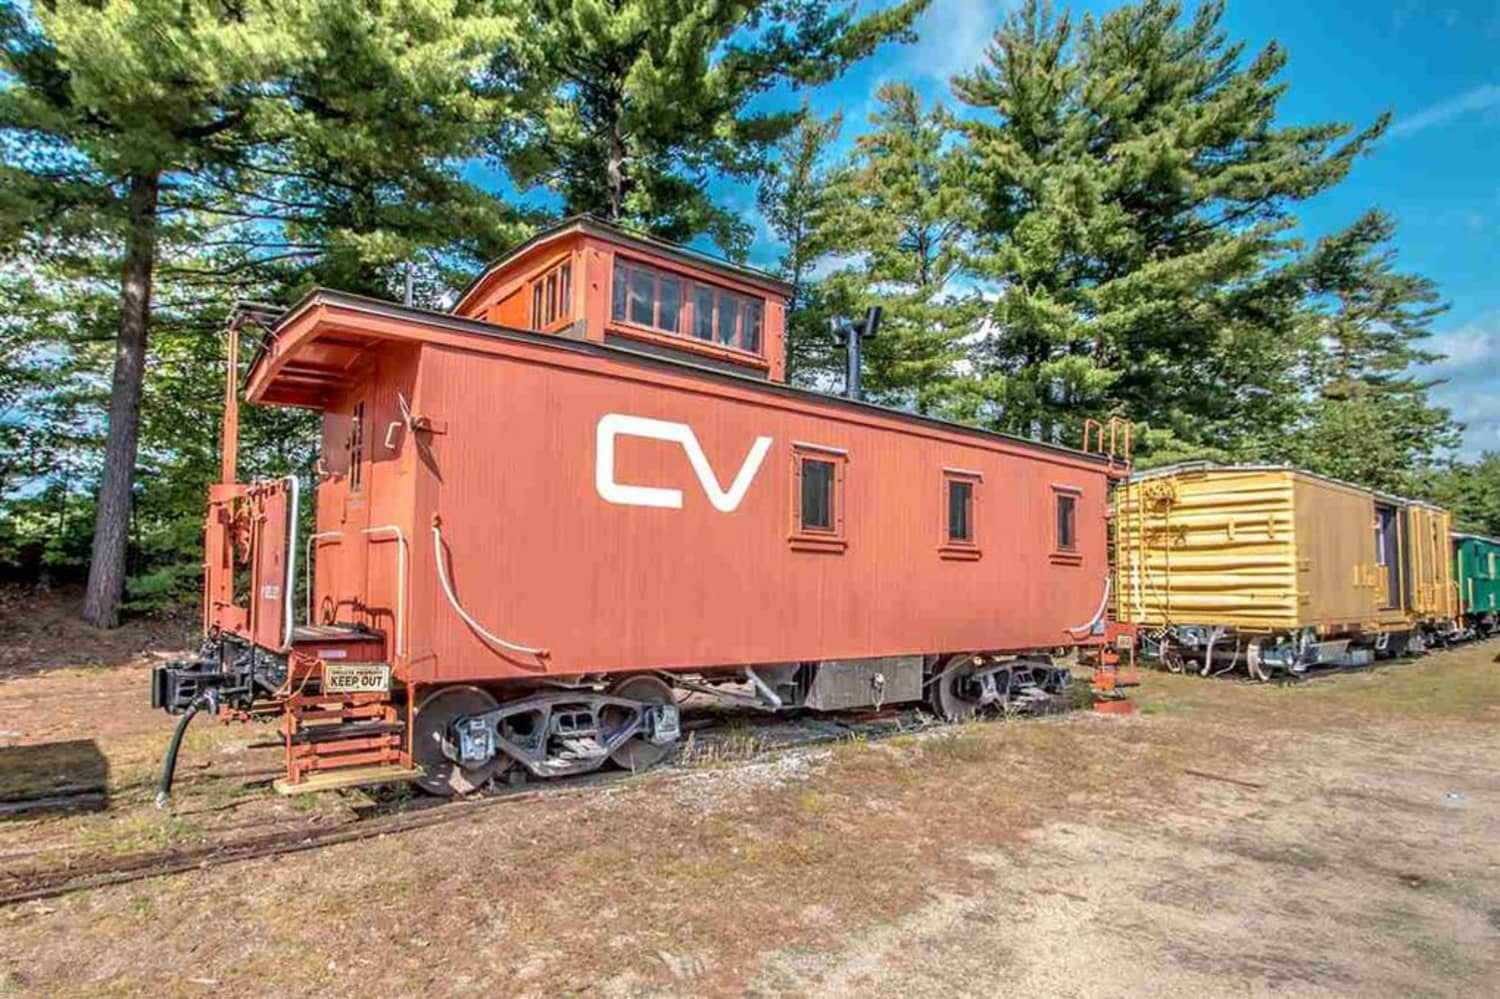 Peek Inside This Converted Caboose Tiny House For Sale